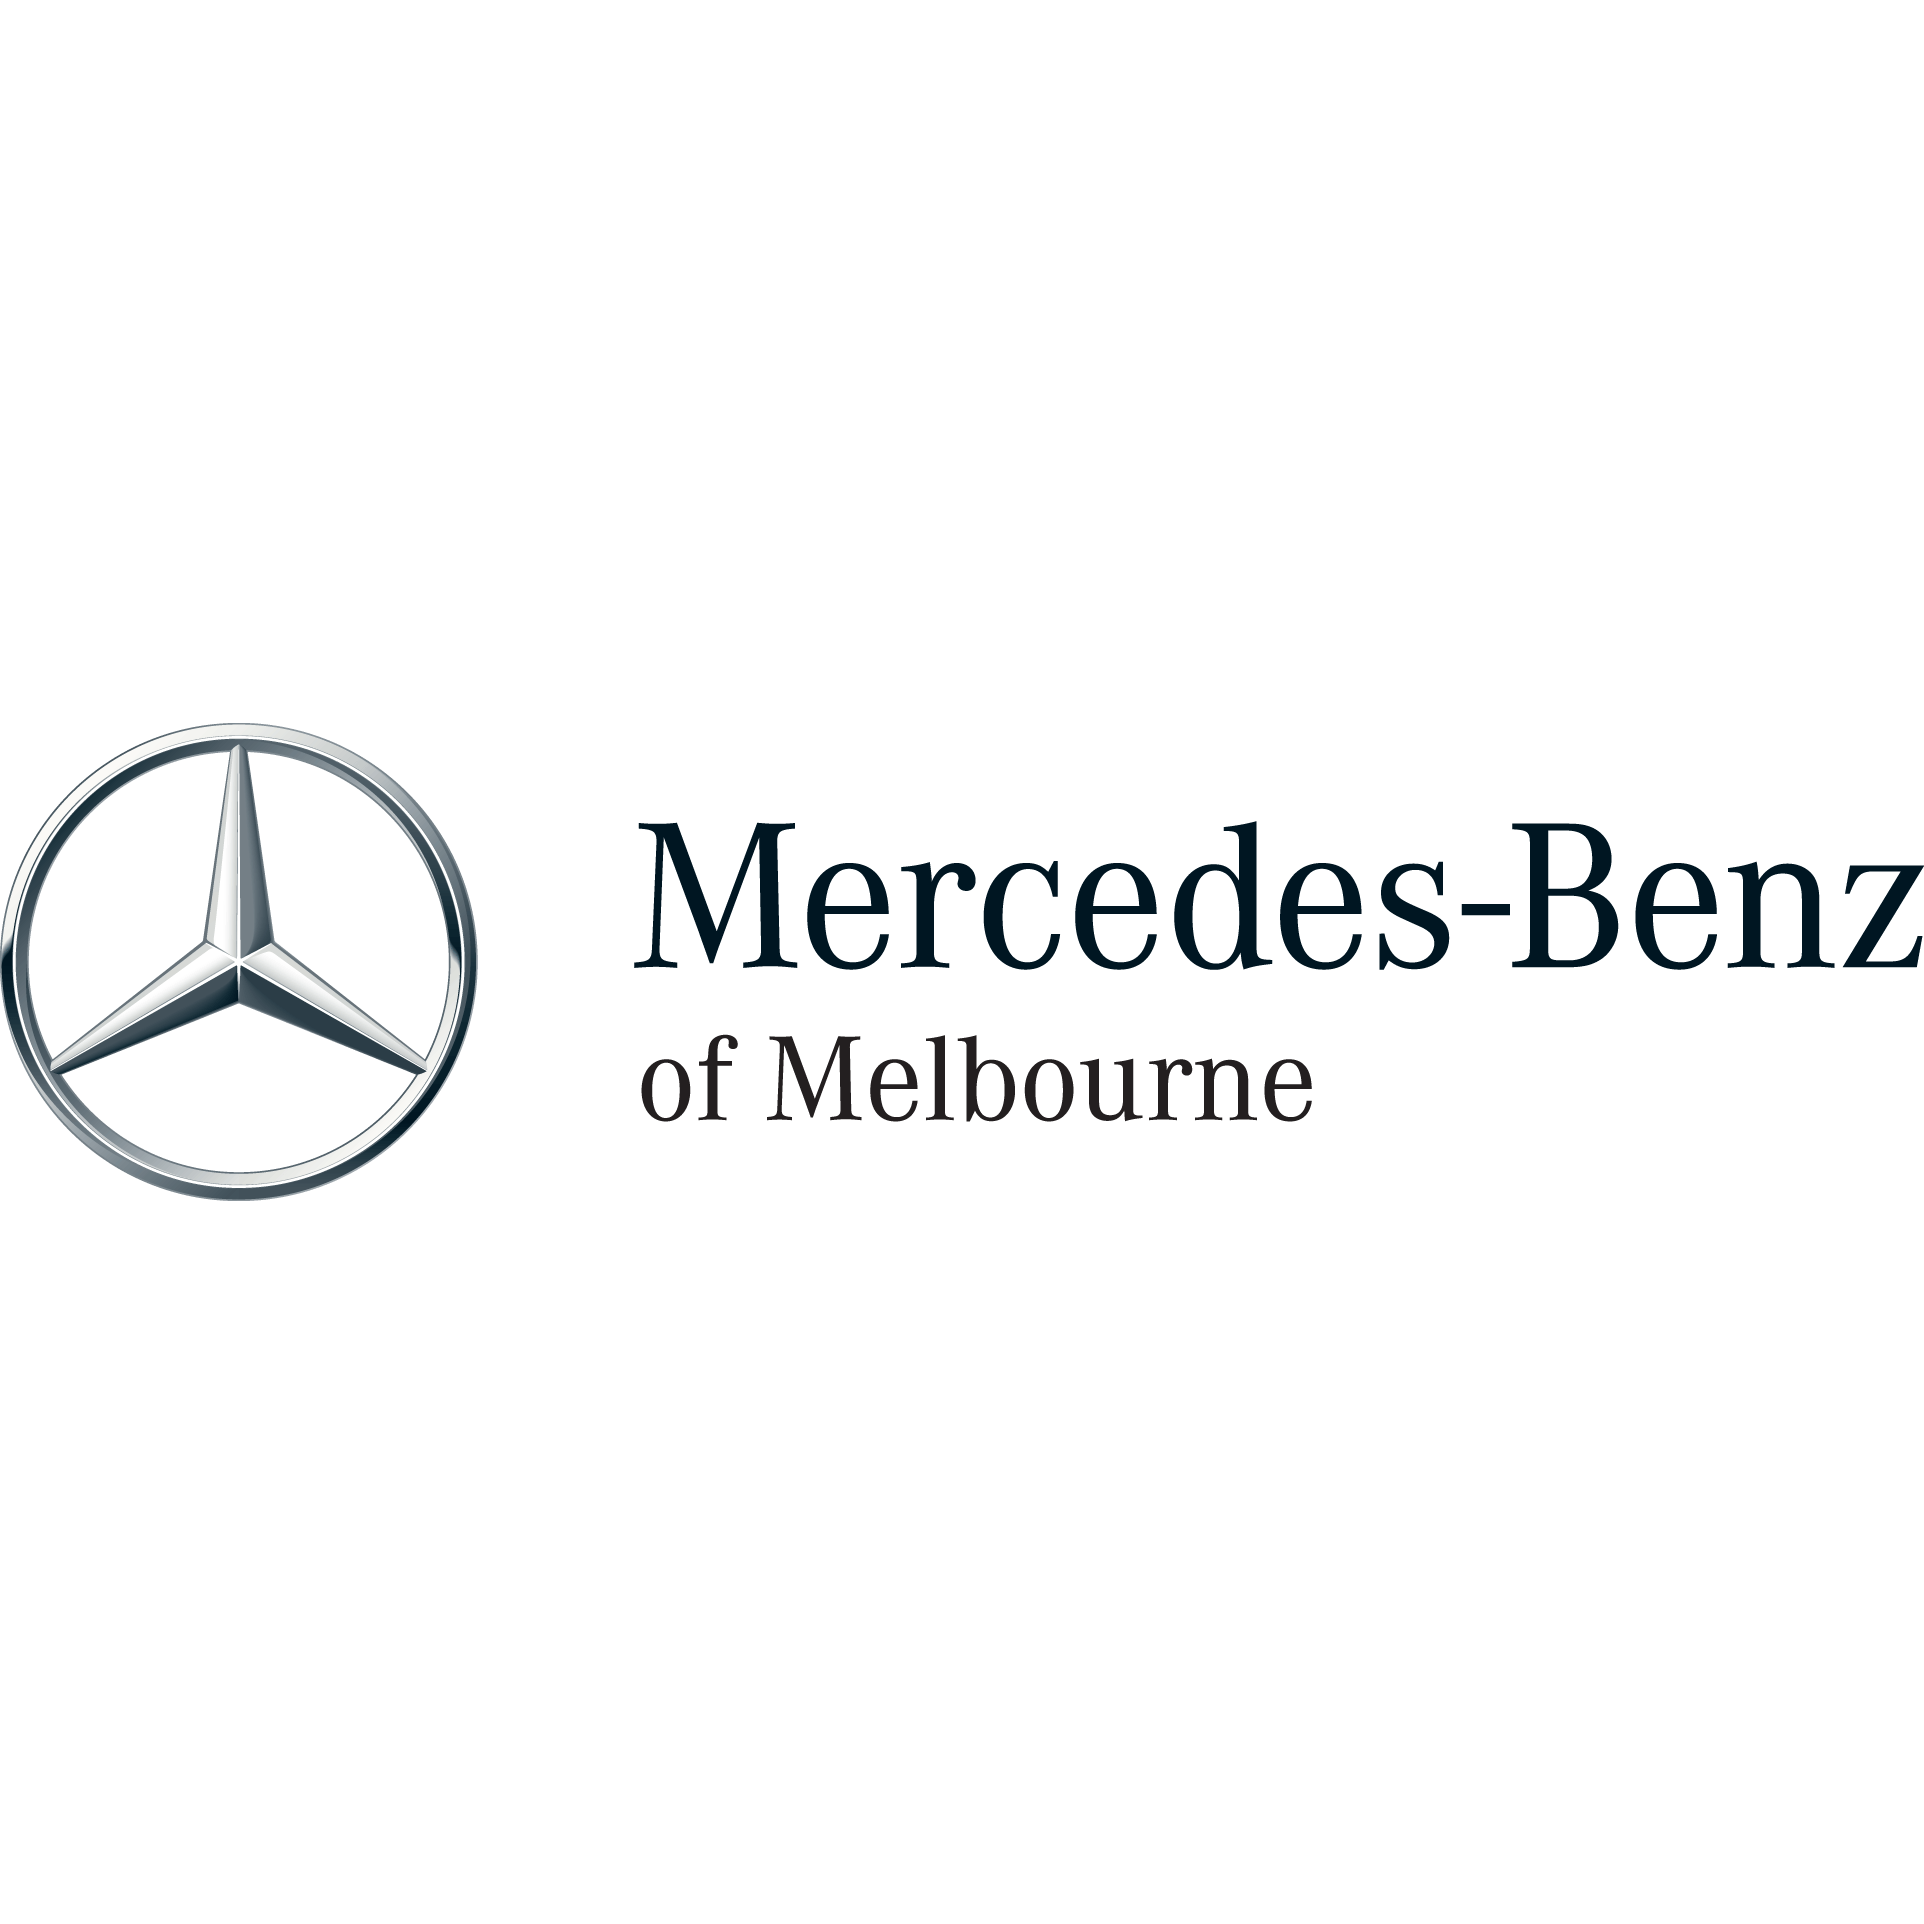 Mercedes benz of melbourne 3 photos auto dealers for Mercedes benz melbourne fl